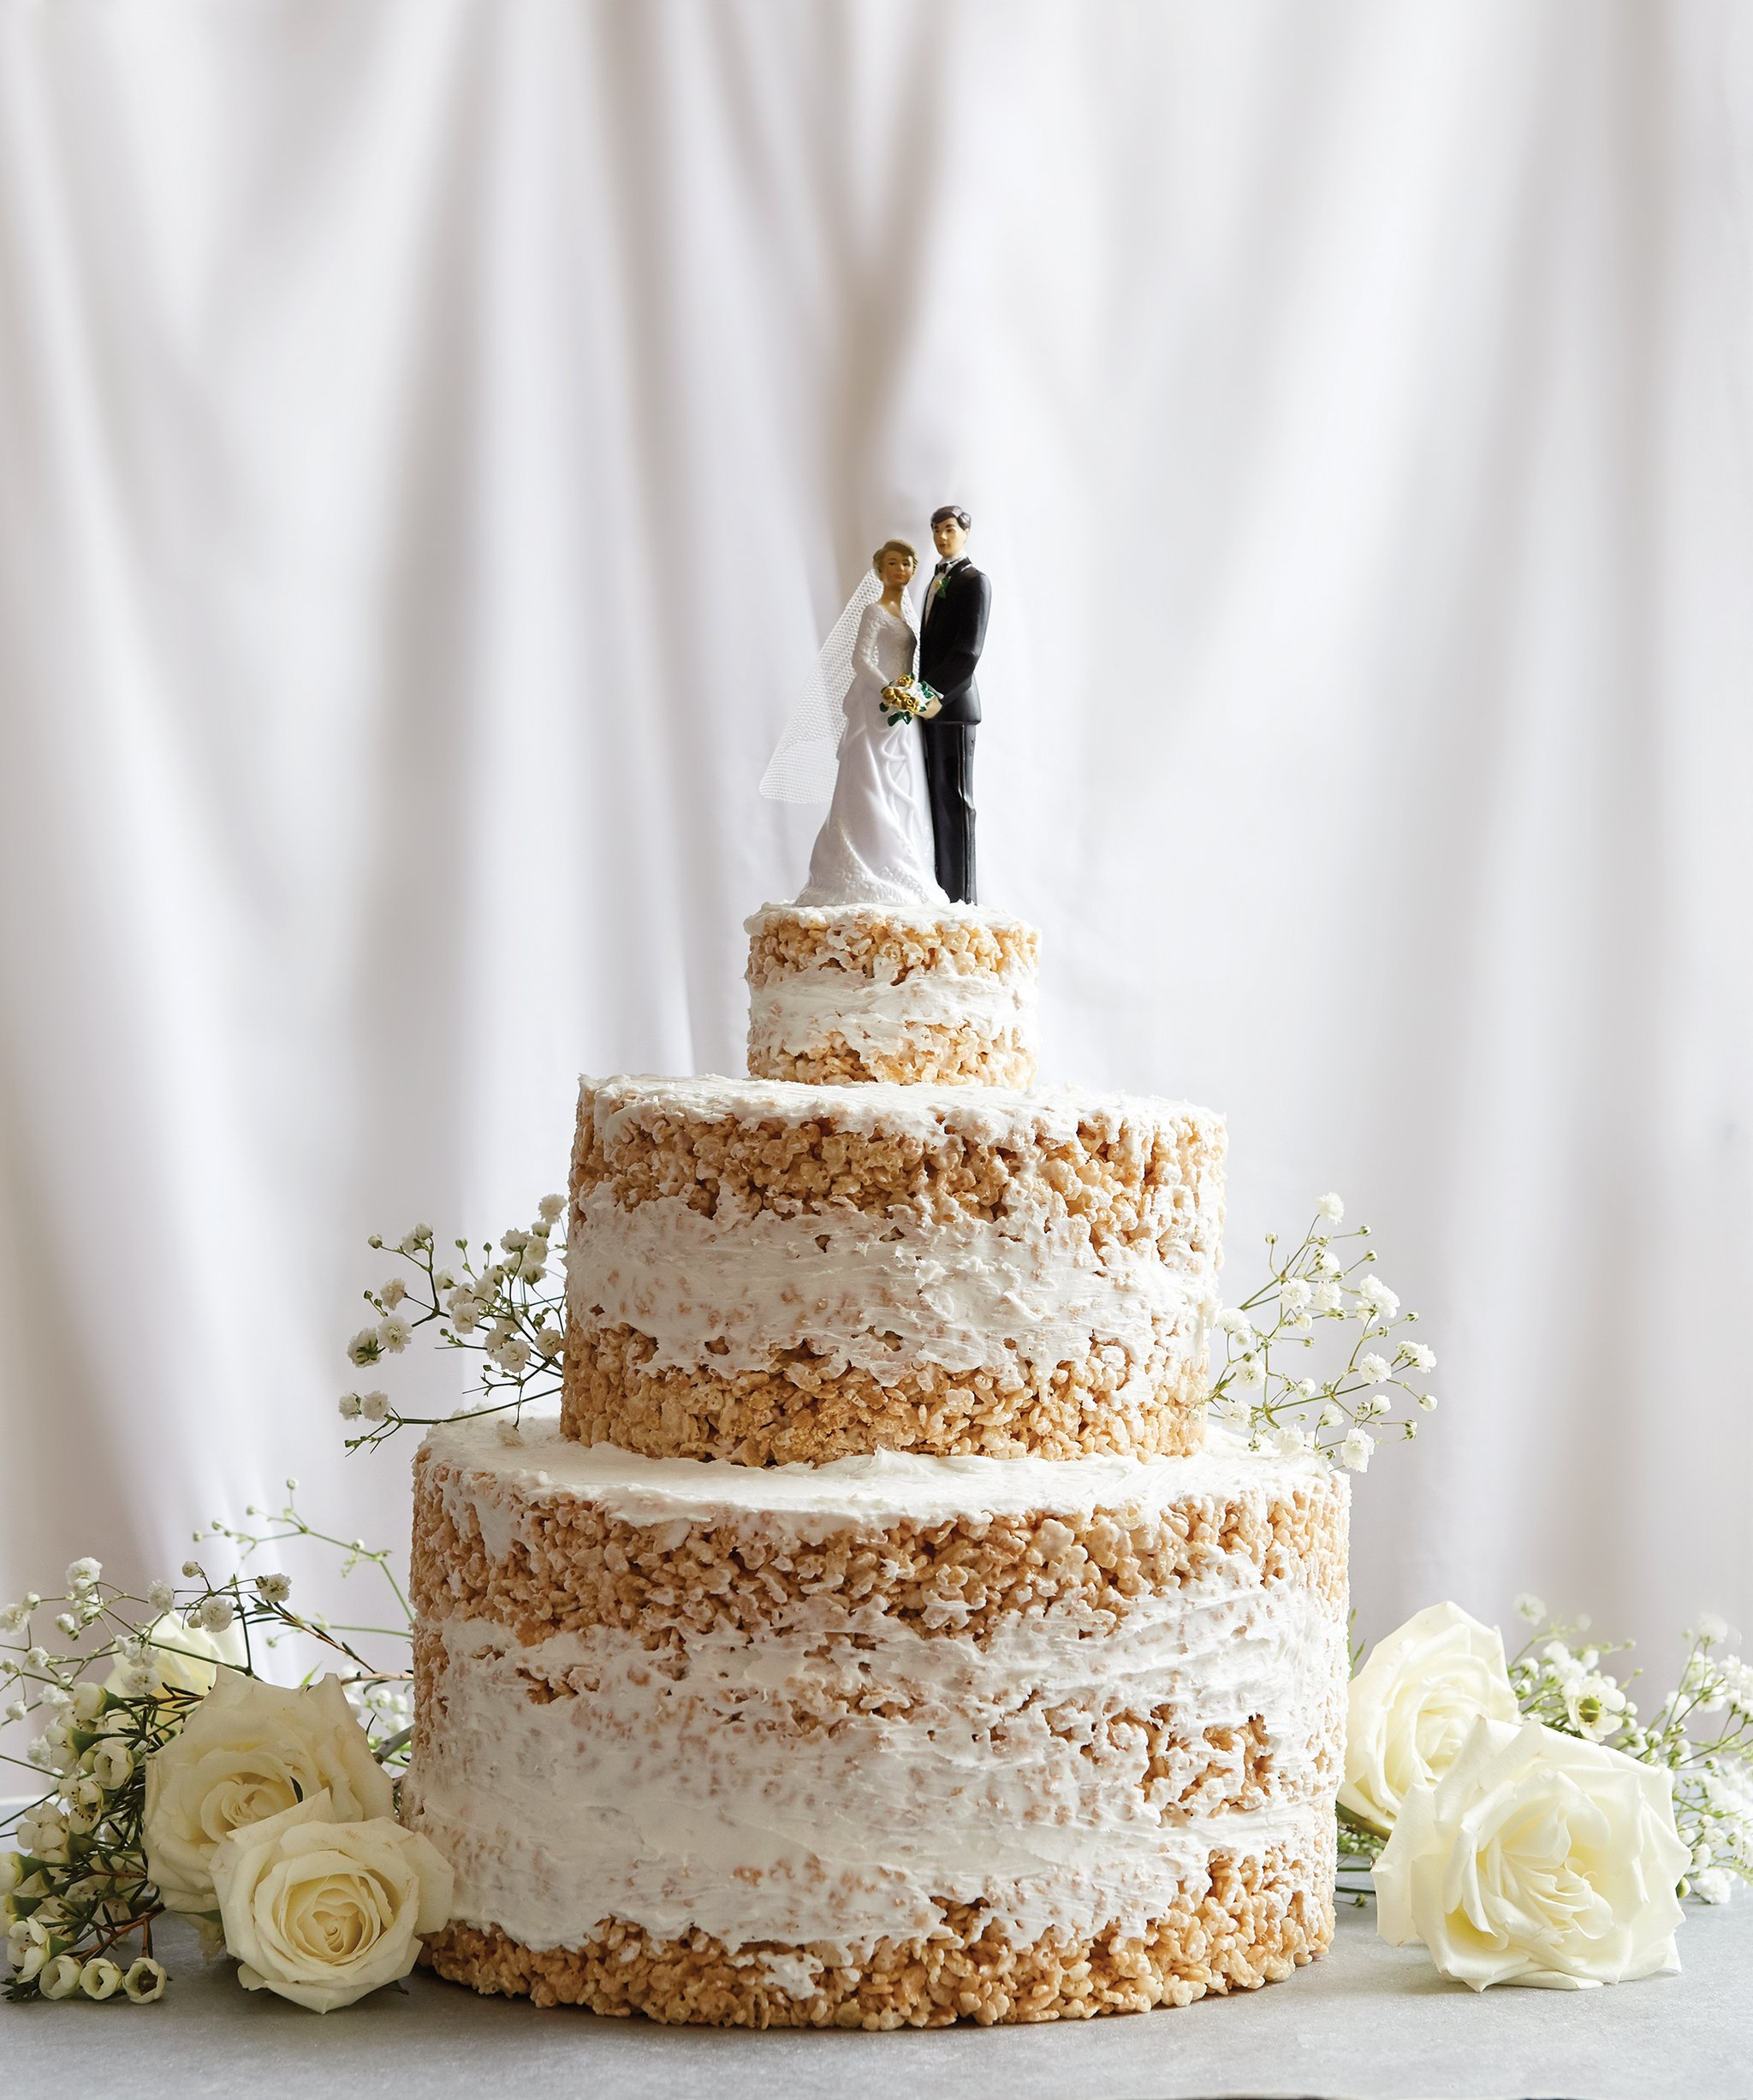 Free photo wedding cake wedding cakes free download jooinn wedding cake junglespirit